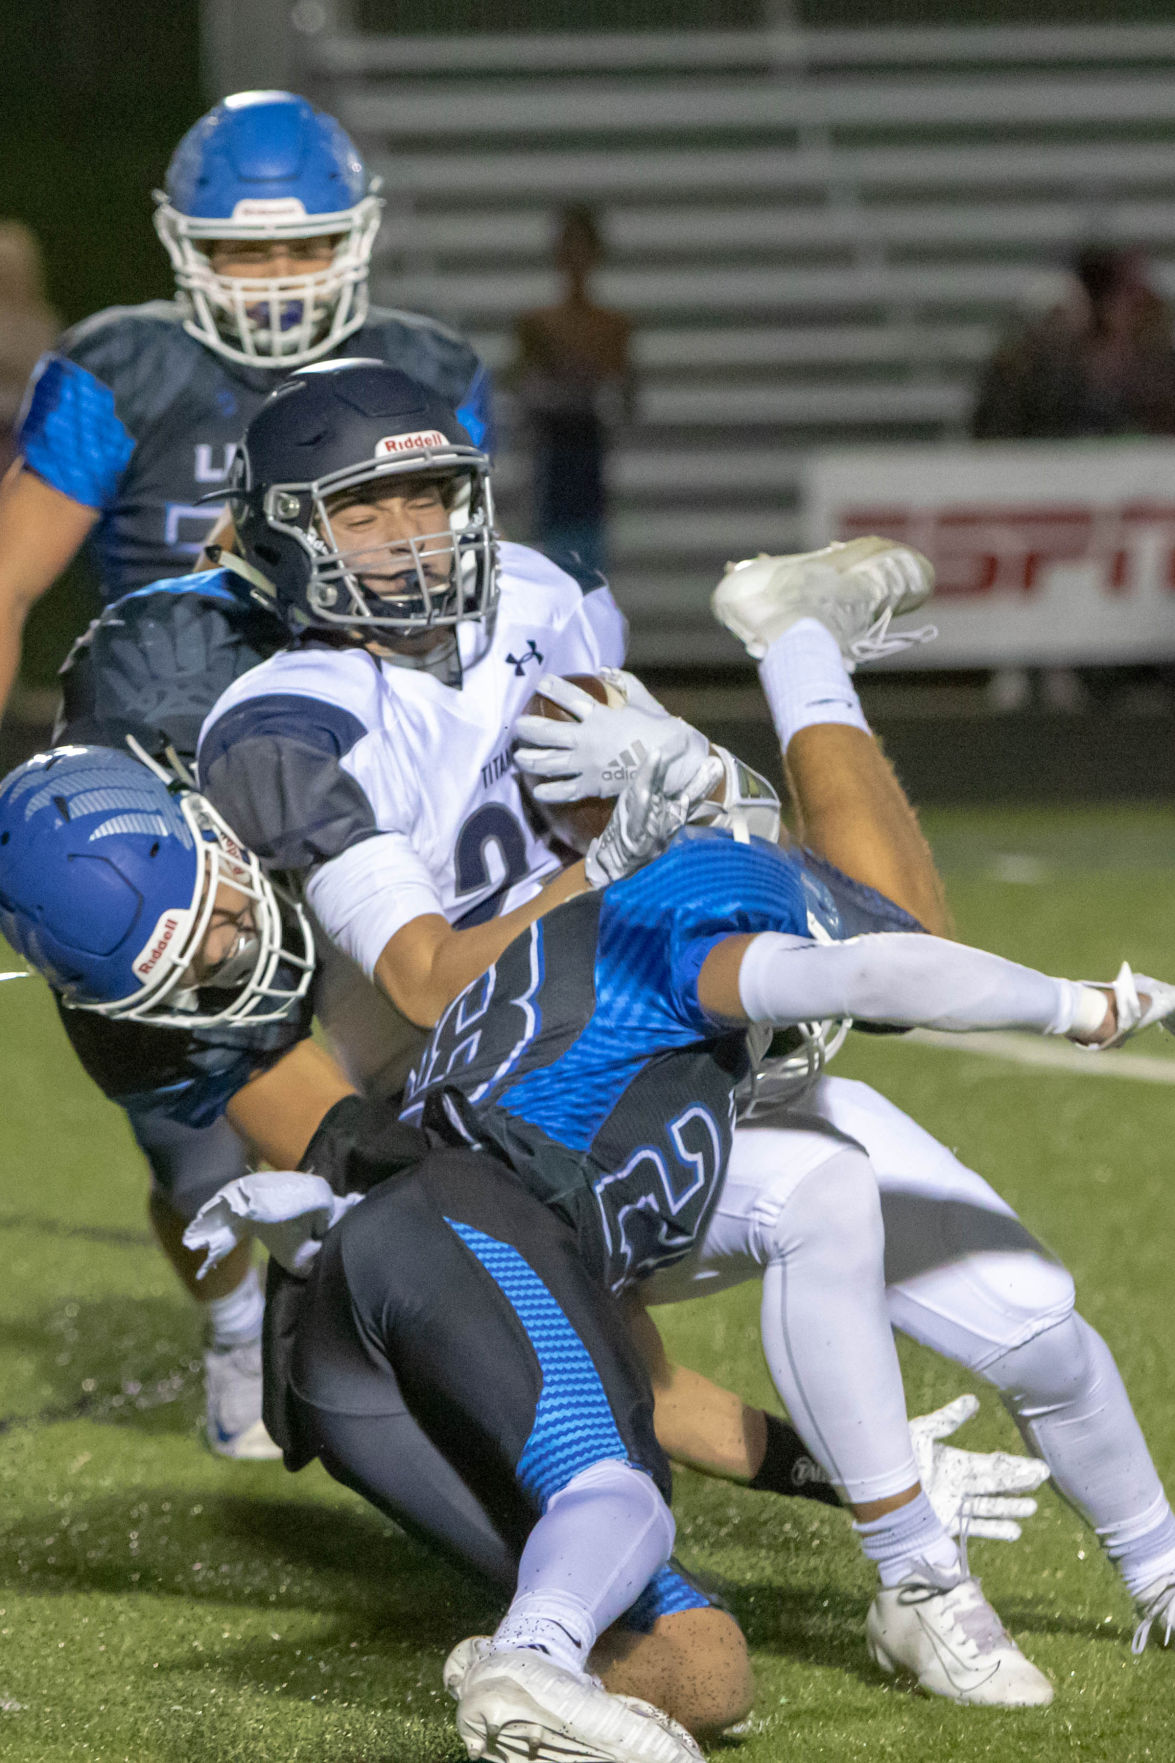 Kaden Rottjakob hits game-winning FG in double OT to lift Liberty over Lee's Summit West